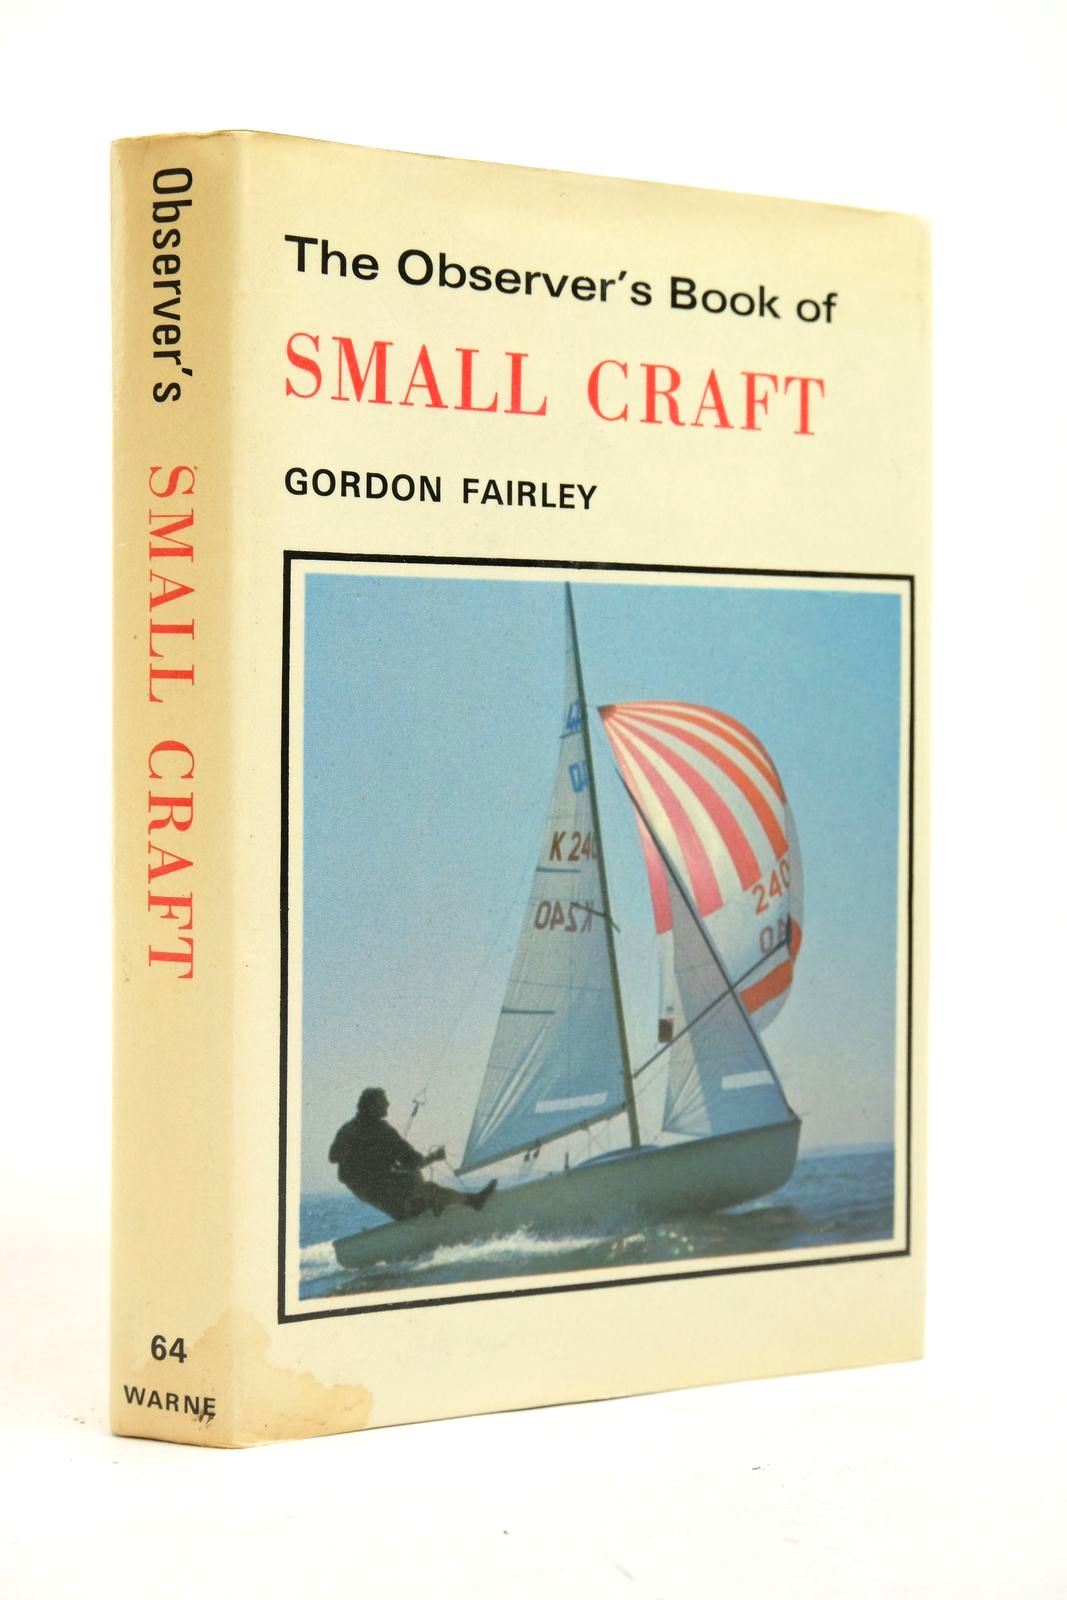 Photo of THE OBSERVER'S BOOK OF SMALL CRAFT written by Fairley, Gordon published by Frederick Warne & Co Ltd. (STOCK CODE: 2134661)  for sale by Stella & Rose's Books